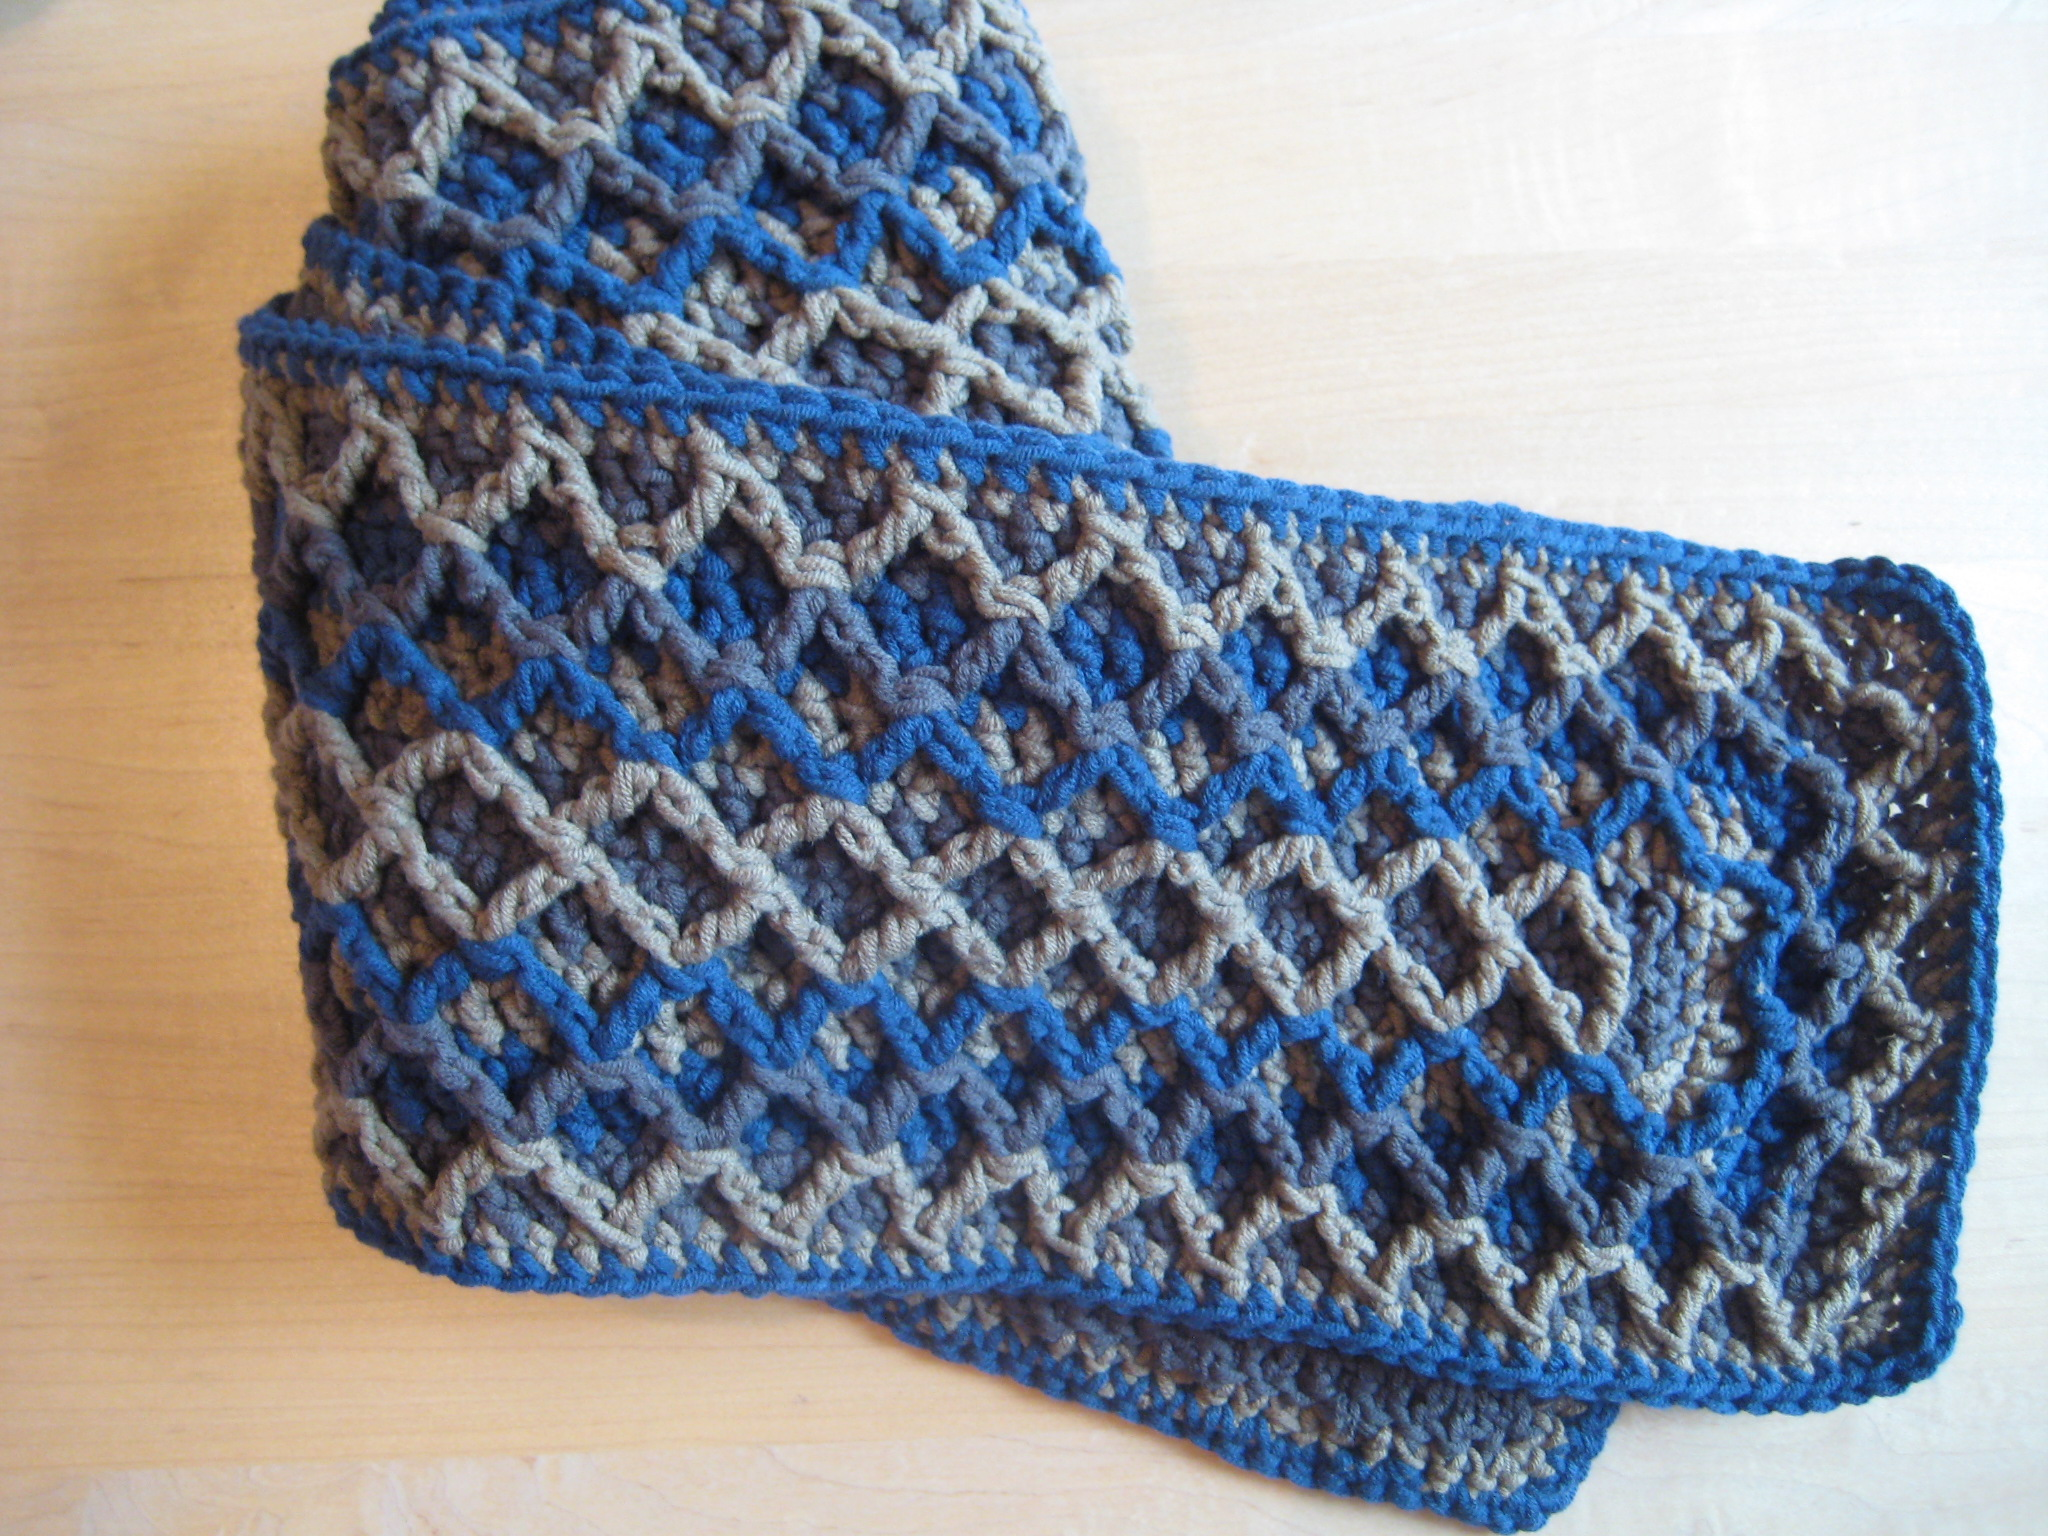 Crochet Patterns Zigzag : Zig Zag Scarf - Free Crochet Pattern